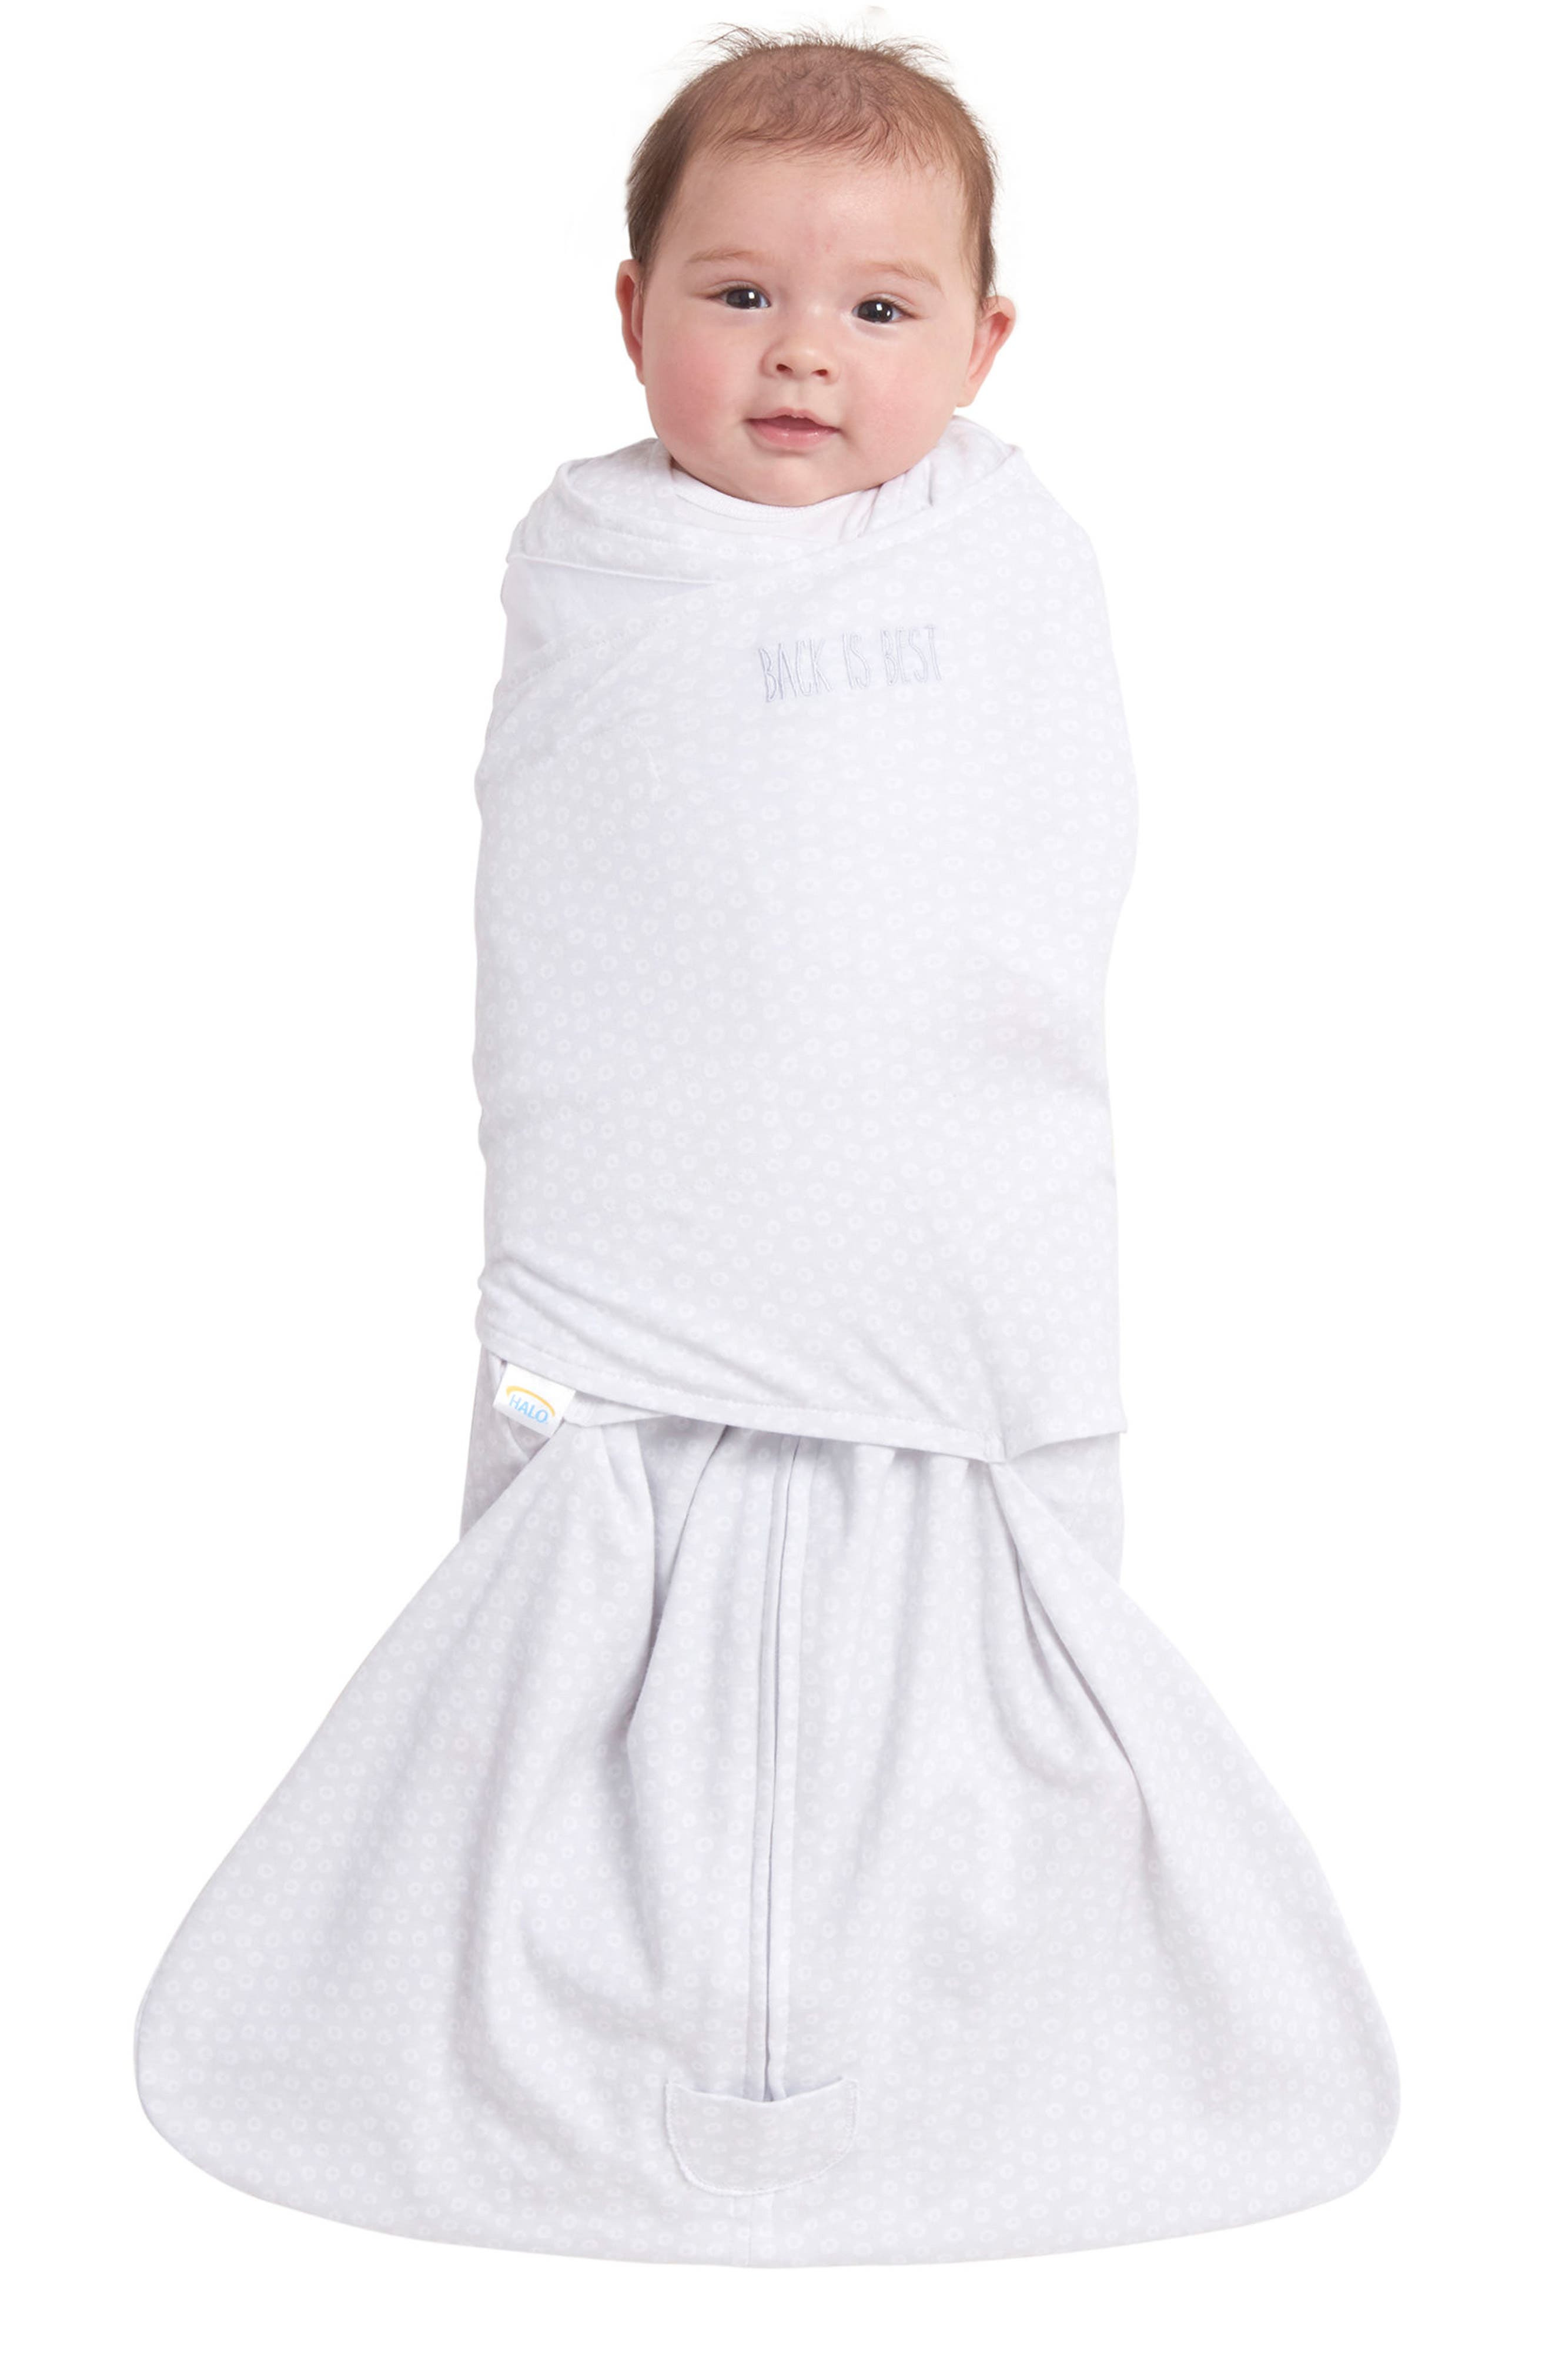 Platinum Series SleepSack<sup>™</sup> Swaddle & SleepSack<sup>™</sup> Set,                             Alternate thumbnail 11, color,                             GREY TINY CIRCLE AND LINES